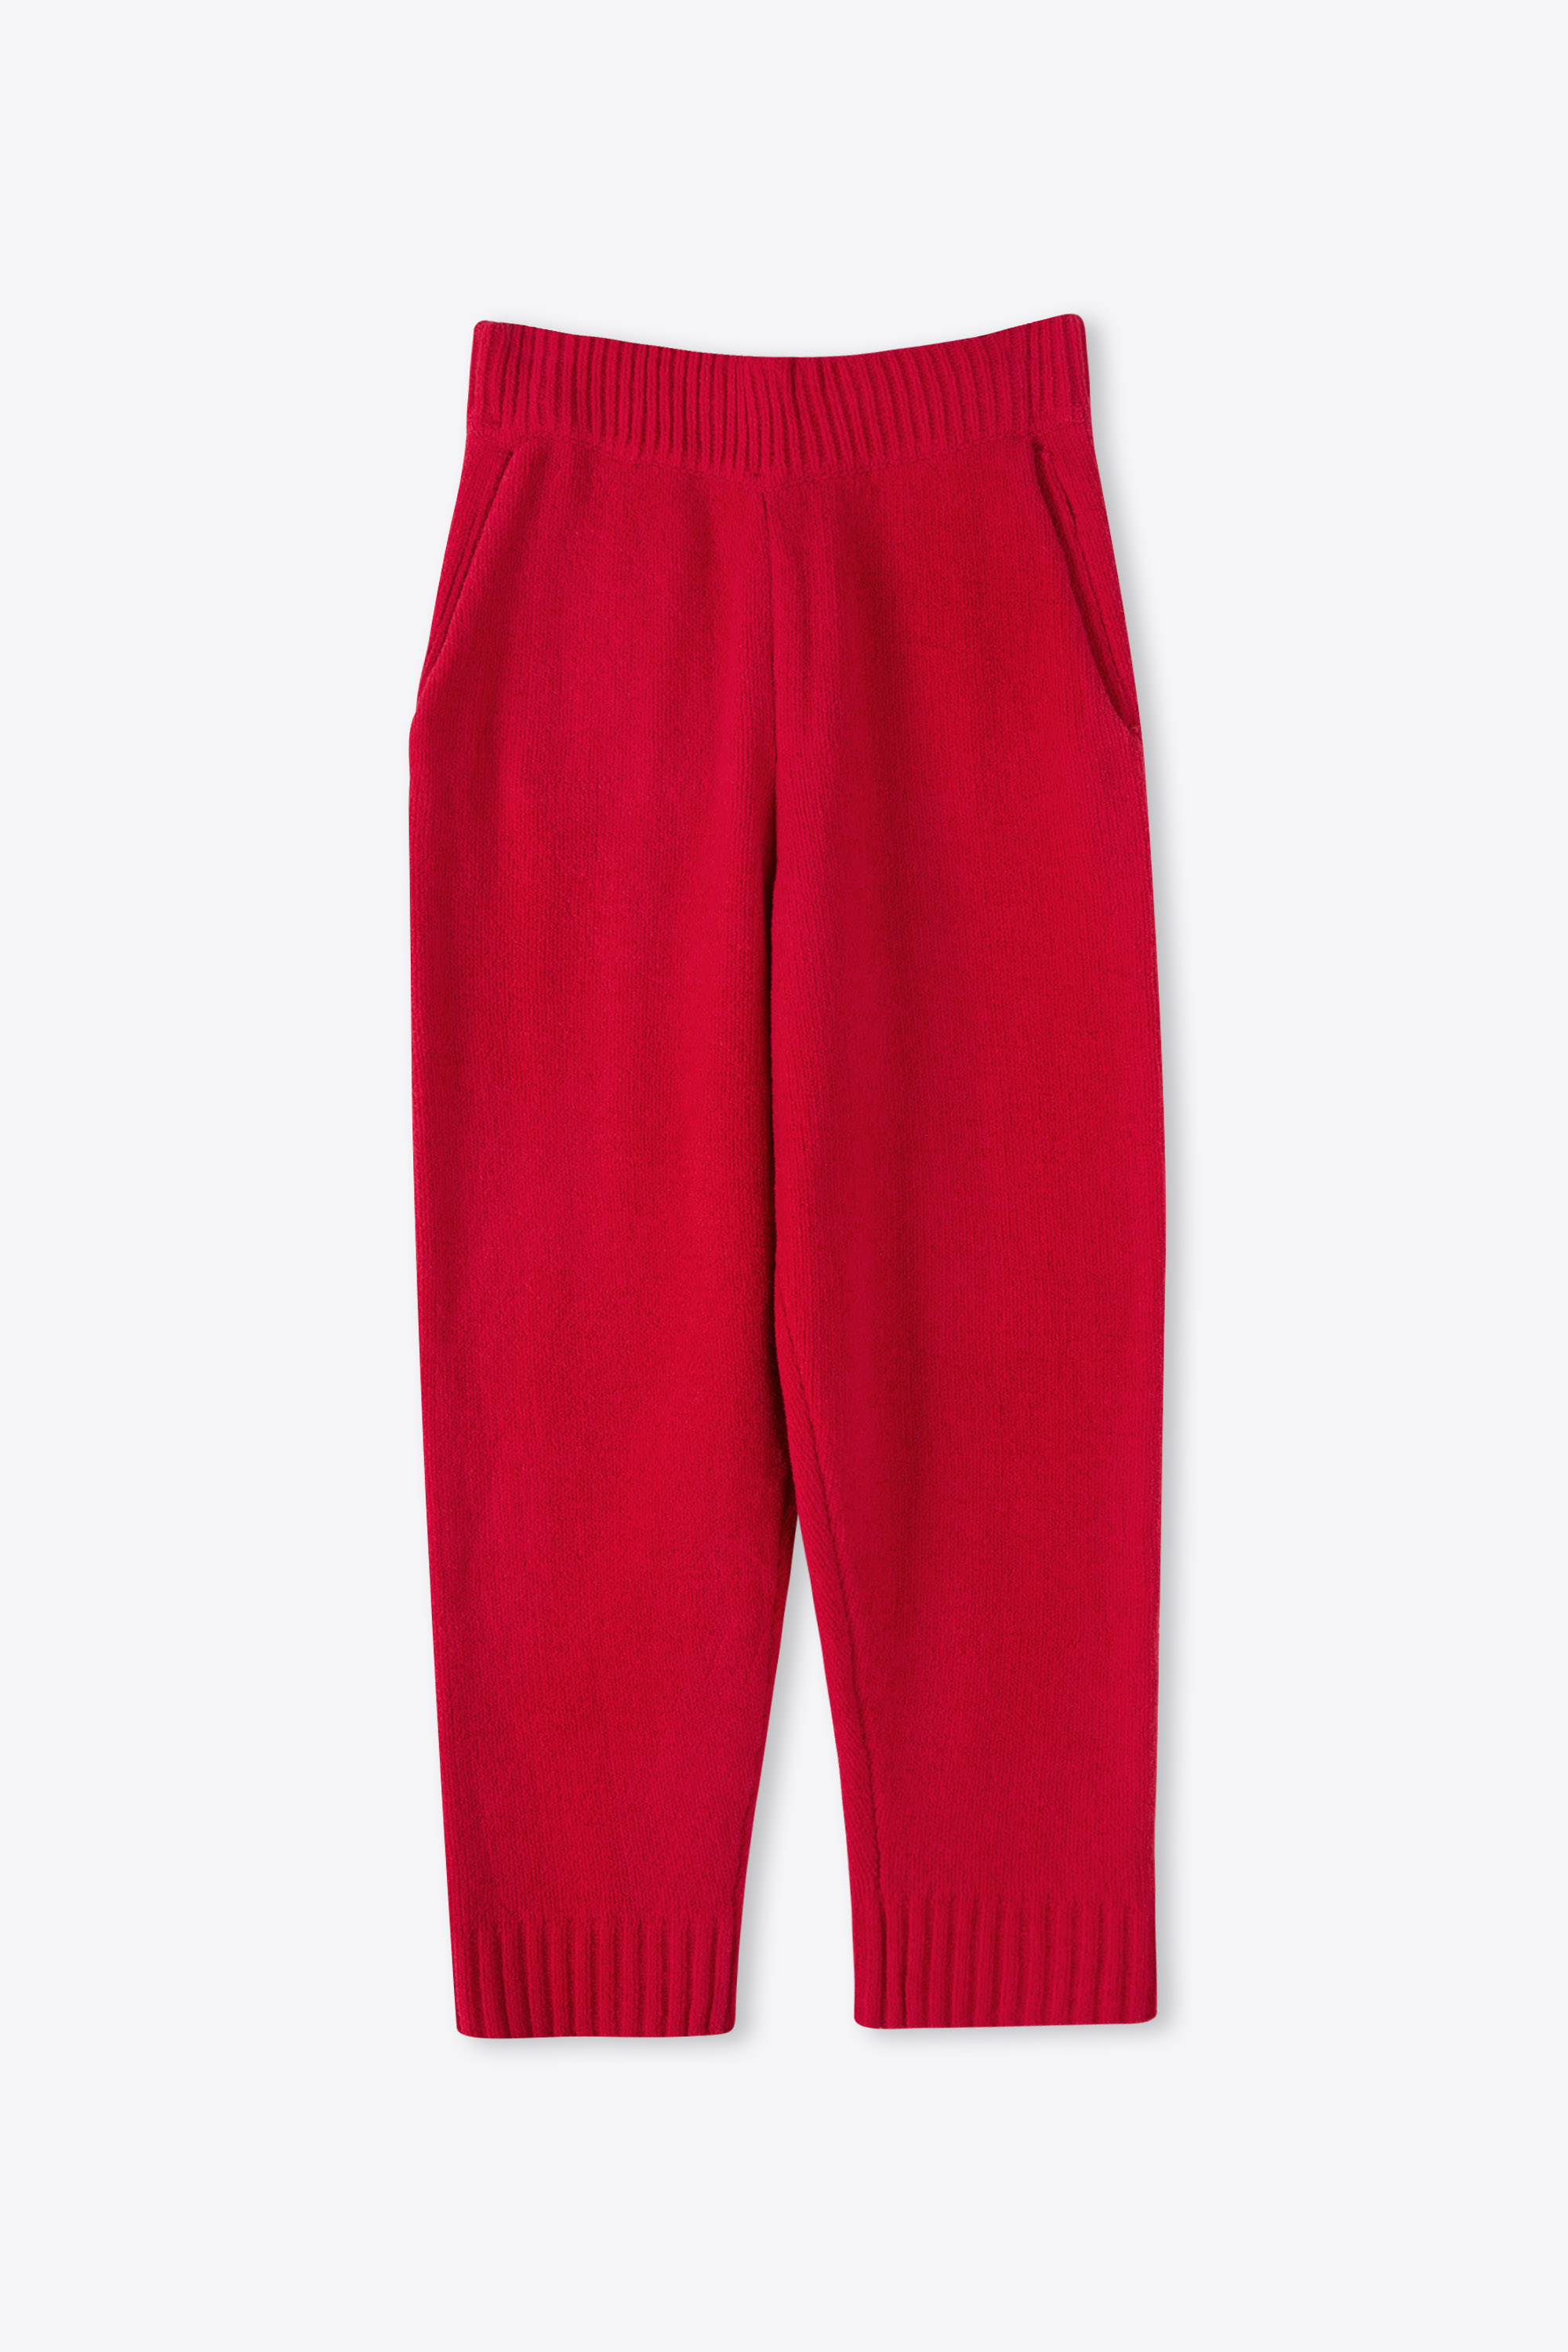 Pant 2938 Red 9